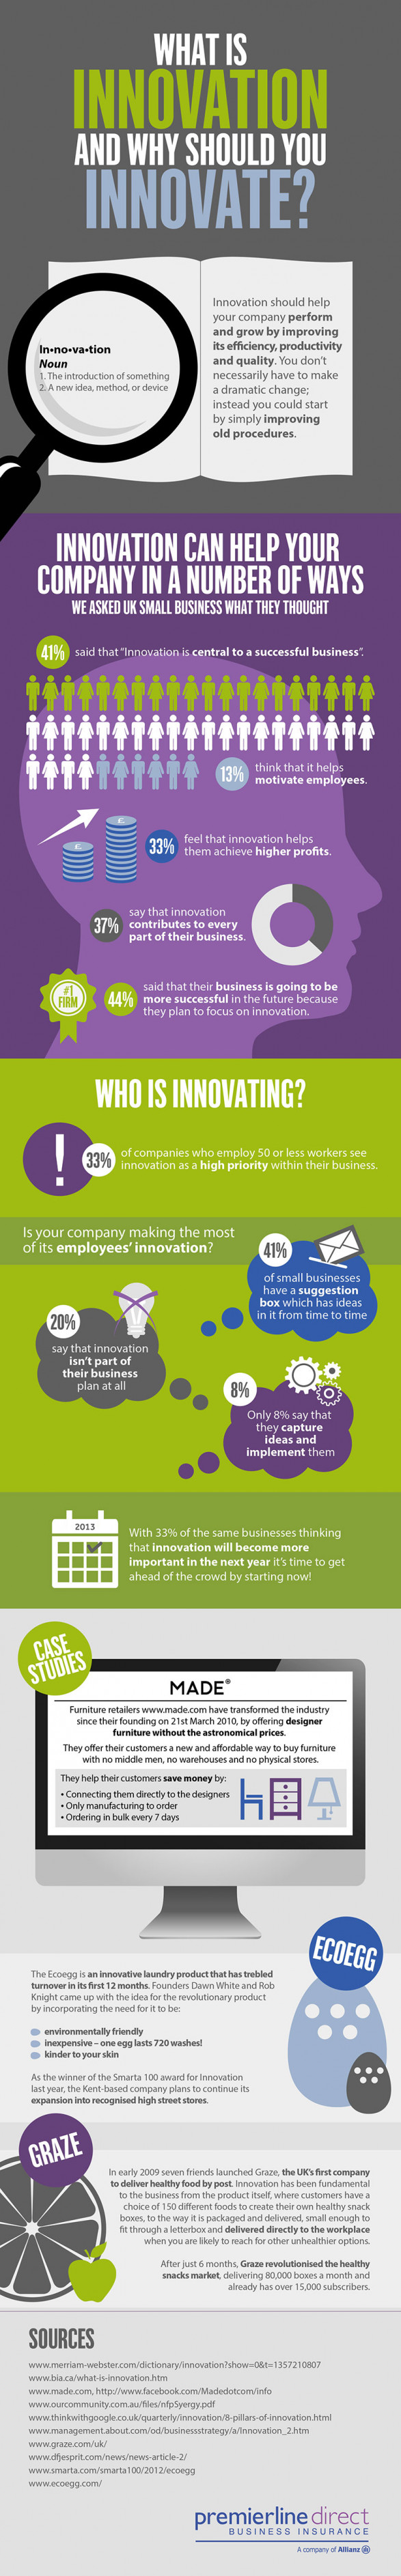 What is Business Innovation?